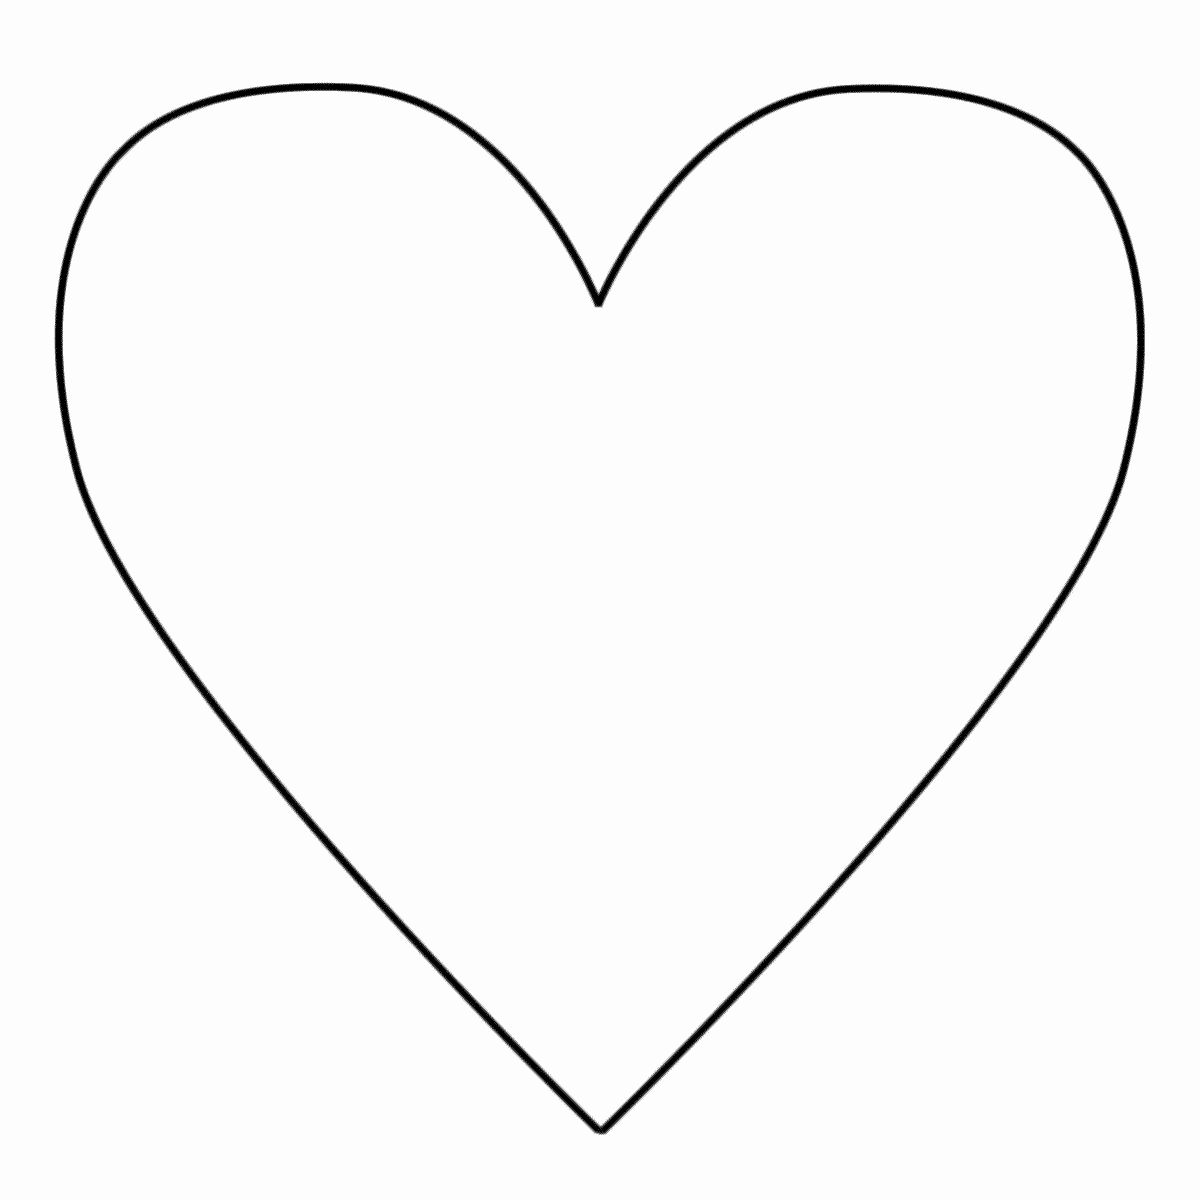 coloring pages heart shape heart shaped coloring download heart shaped coloring for heart pages shape coloring